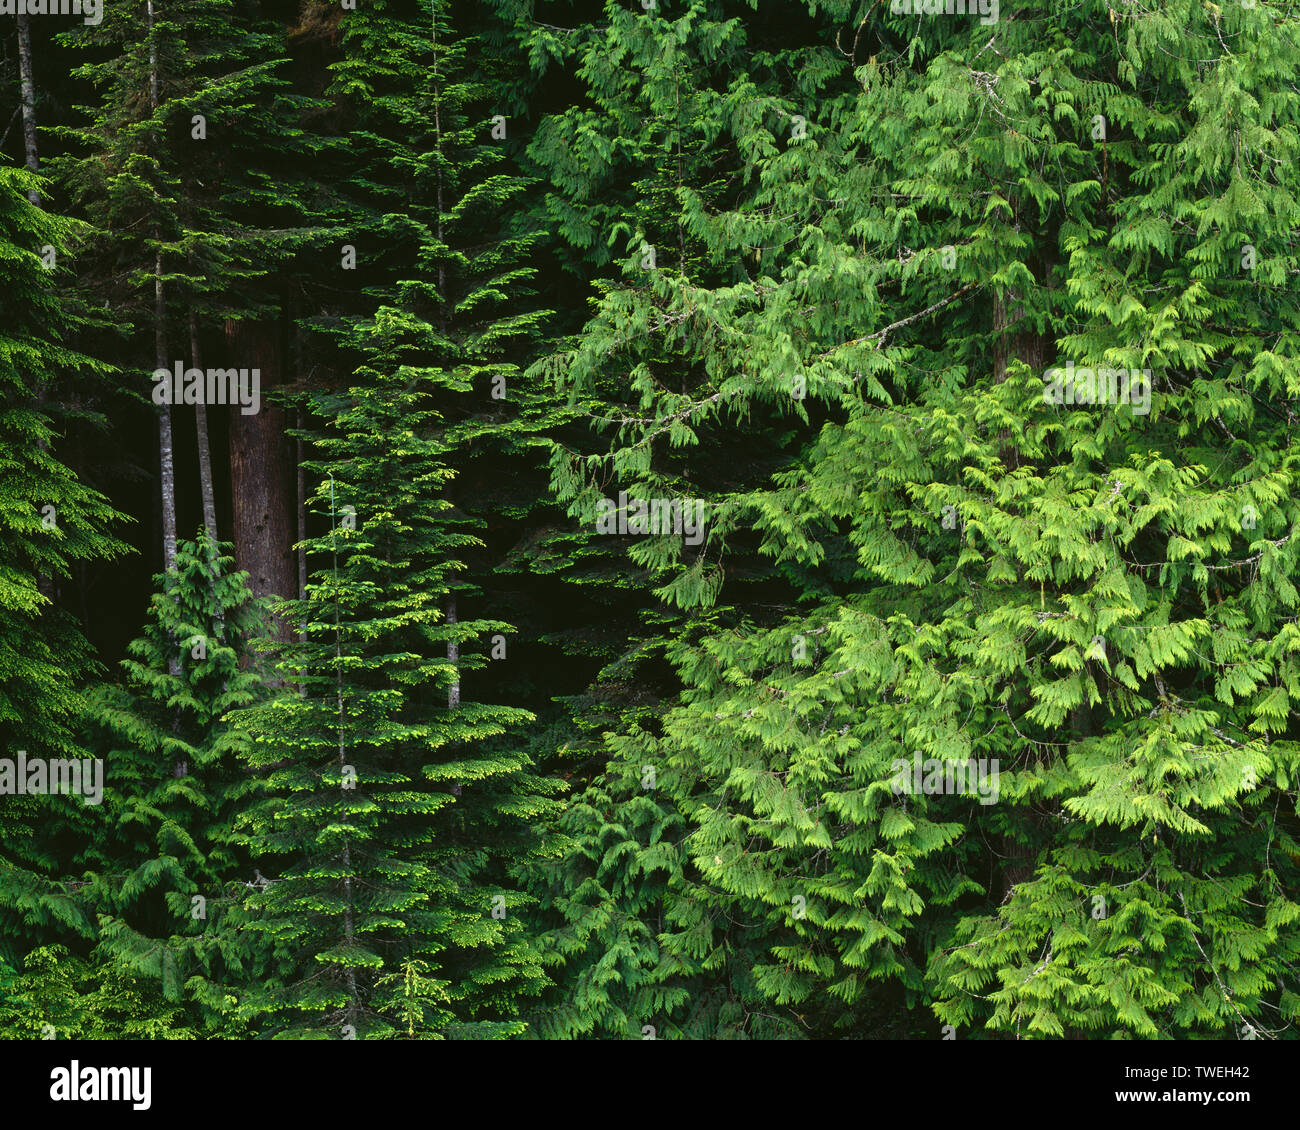 USA, Washington, Olympic National Park, Old-growth coniferous forest with western hemlock and western red cedar; near Lake Creek. - Stock Image